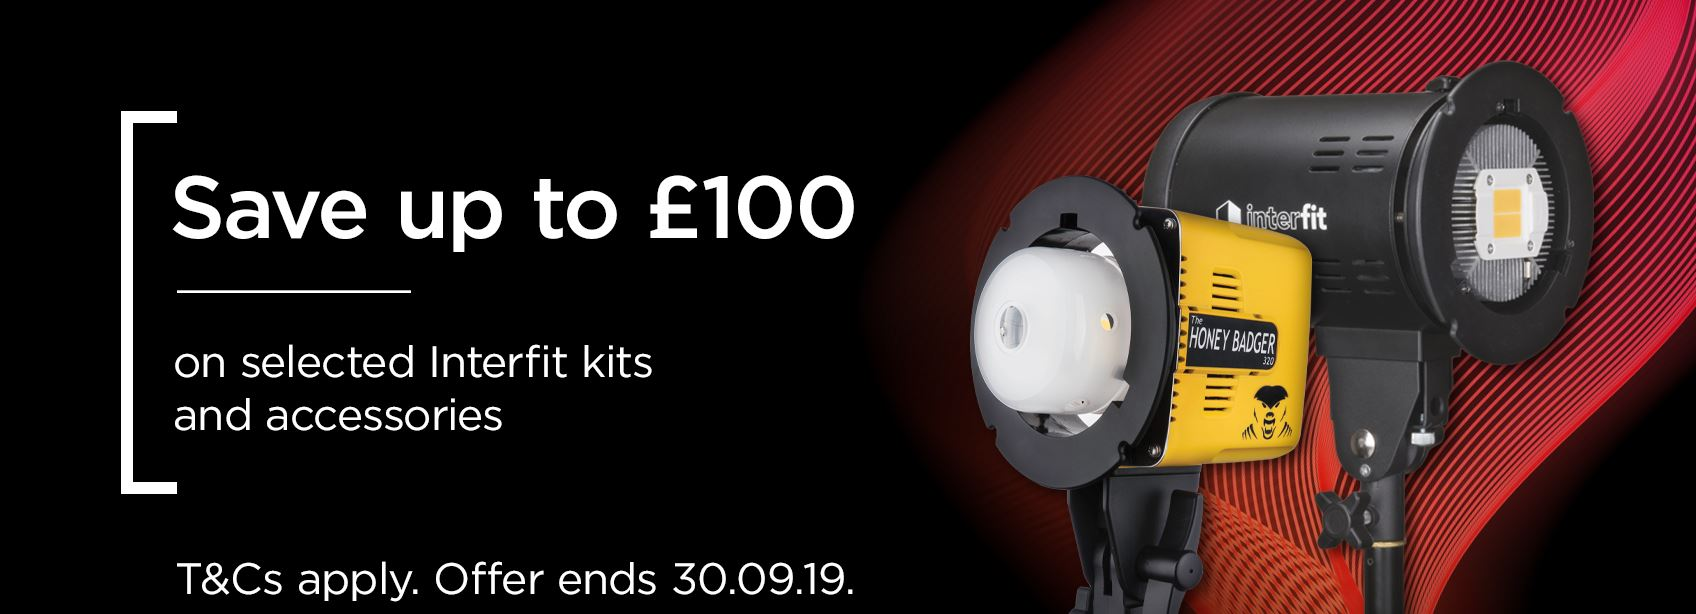 The latest offers from Interfit | Save up to £100!